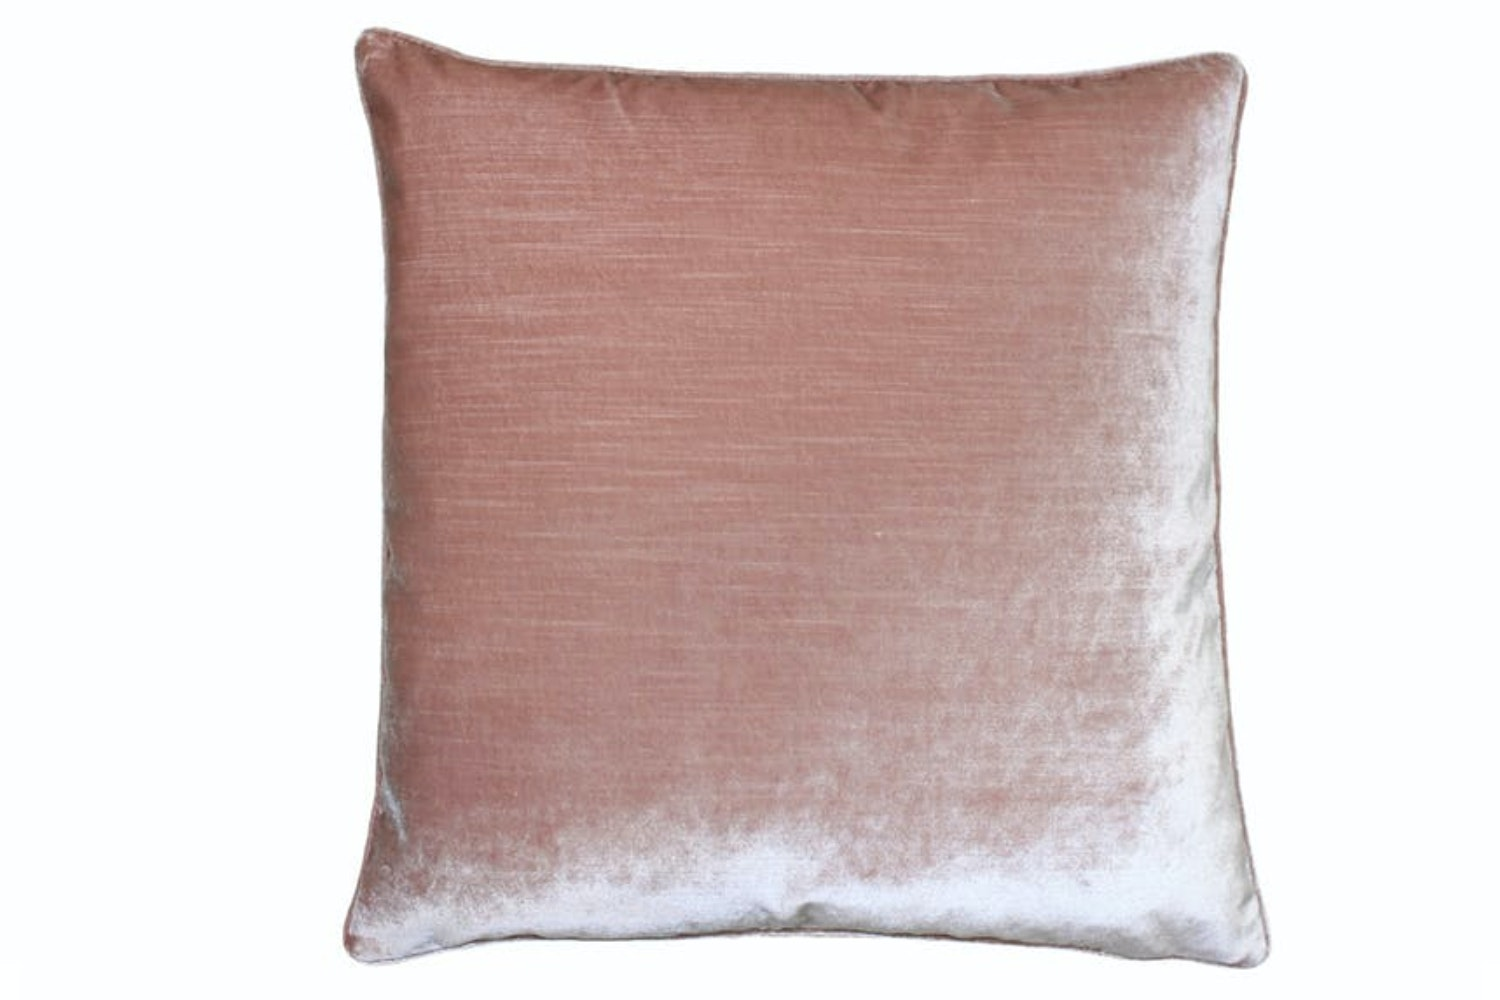 Luxe Velvet Feather Filled Cushion 55x55 | Blush